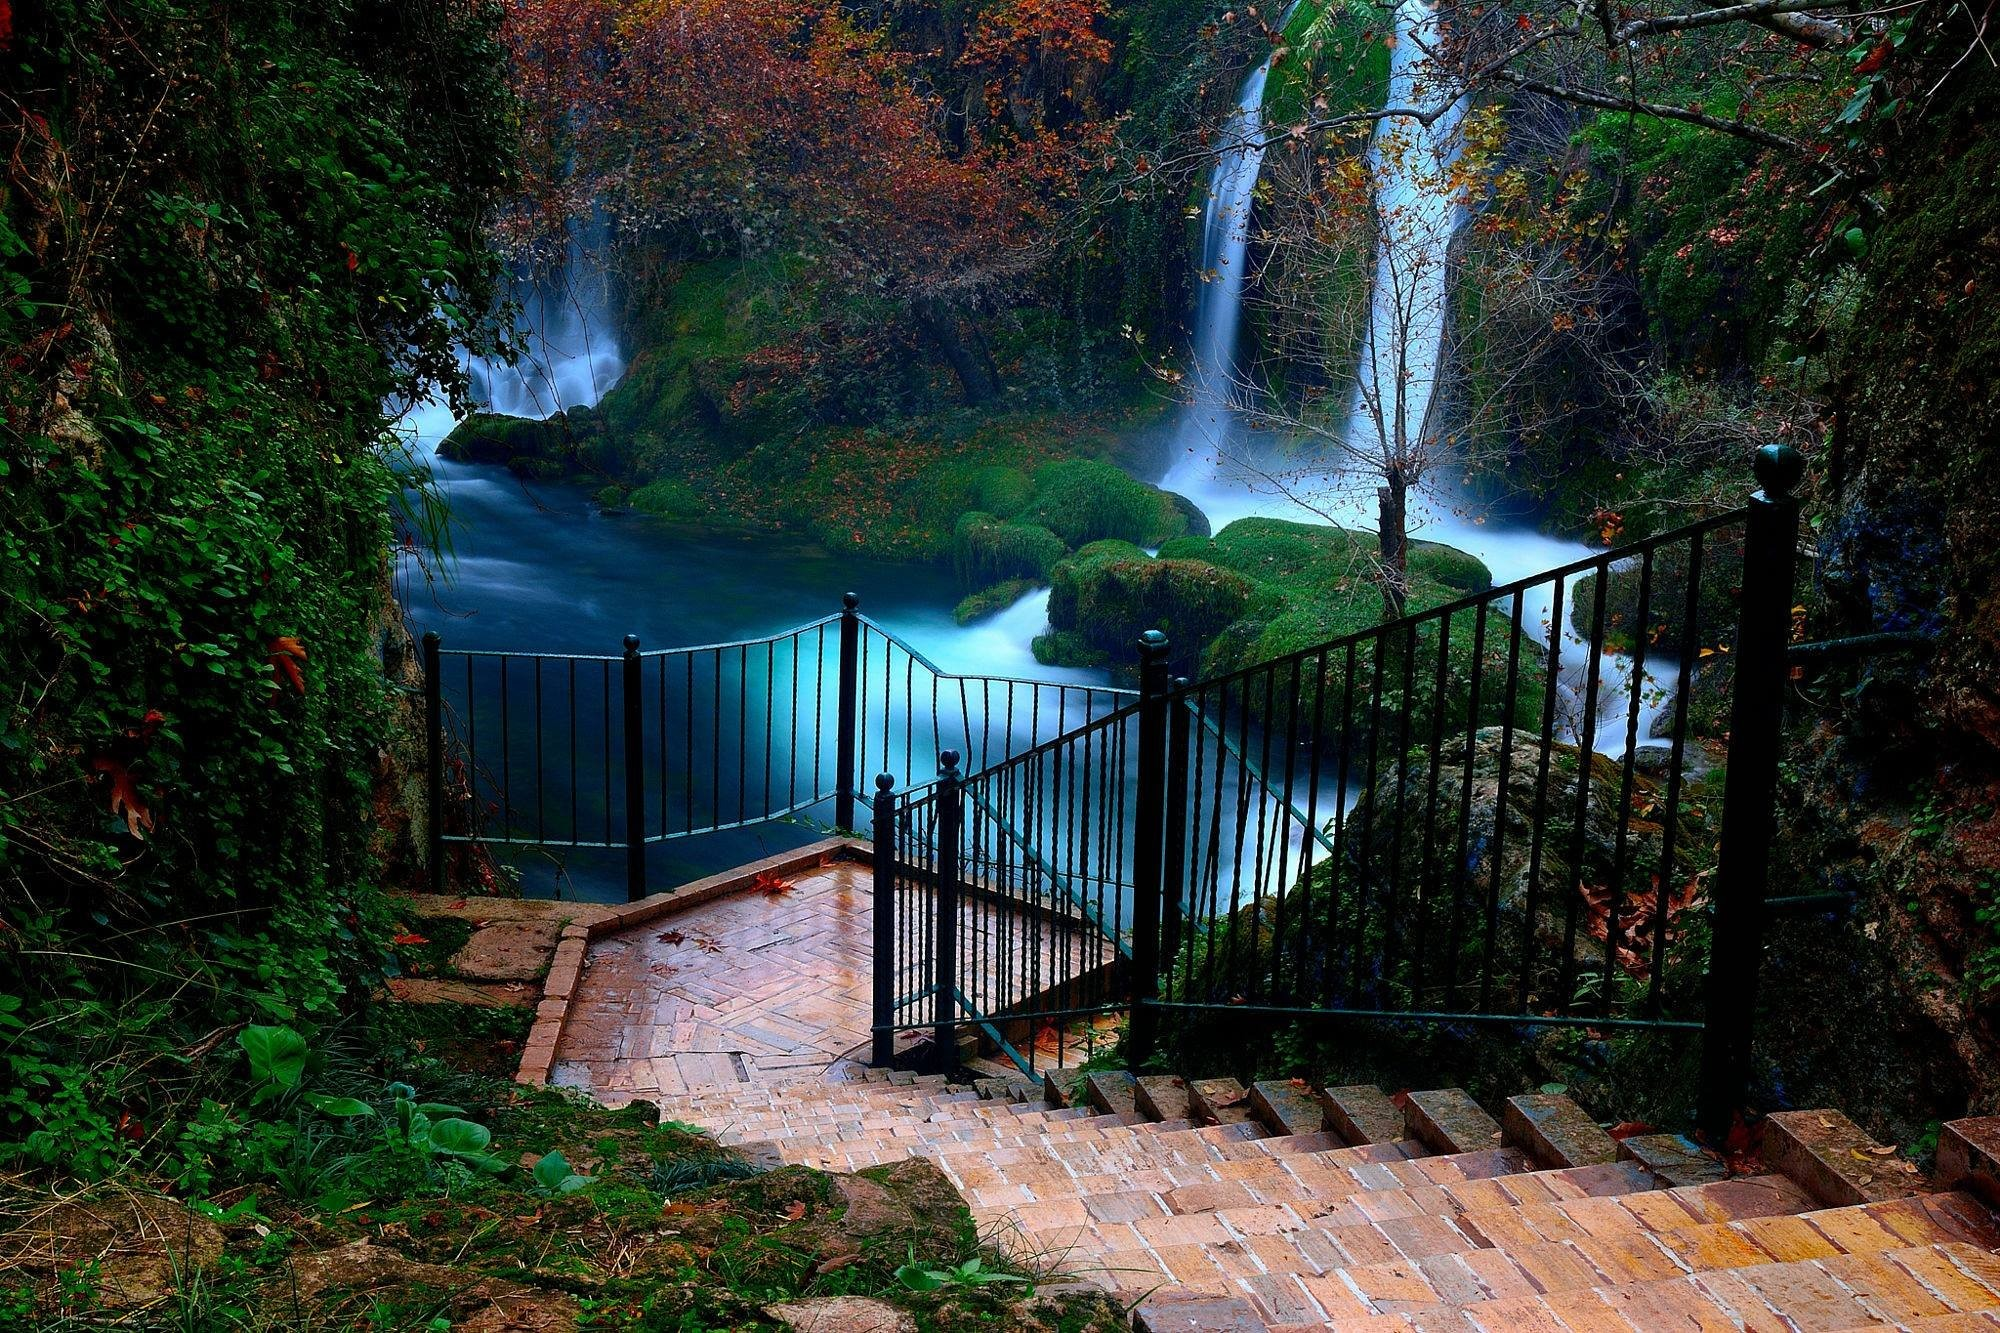 Res: 2000x1333, waterfall, landscape, antalya hd nature wallpapers, amazing, background  images,nature backgrounds,duden, tumblr, nature, beauty Wallpaper HD